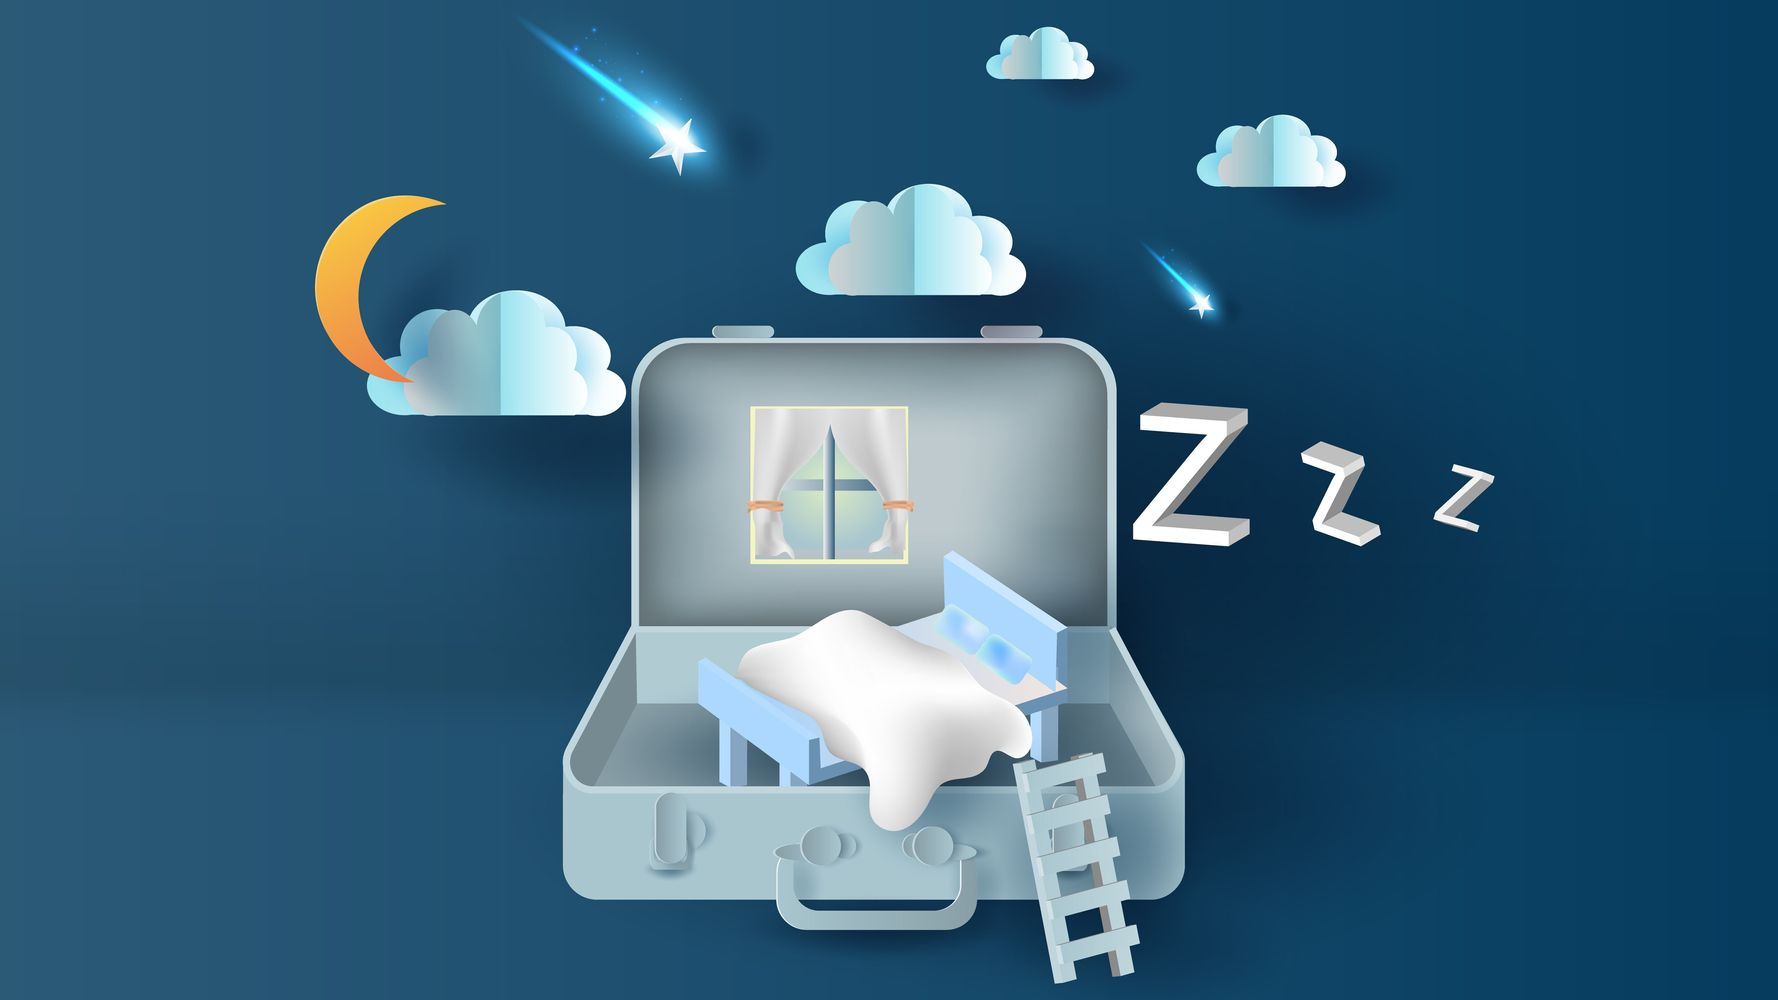 How To Have A Better Night's Sleep: The Ultimate Sleep Hygiene Guide